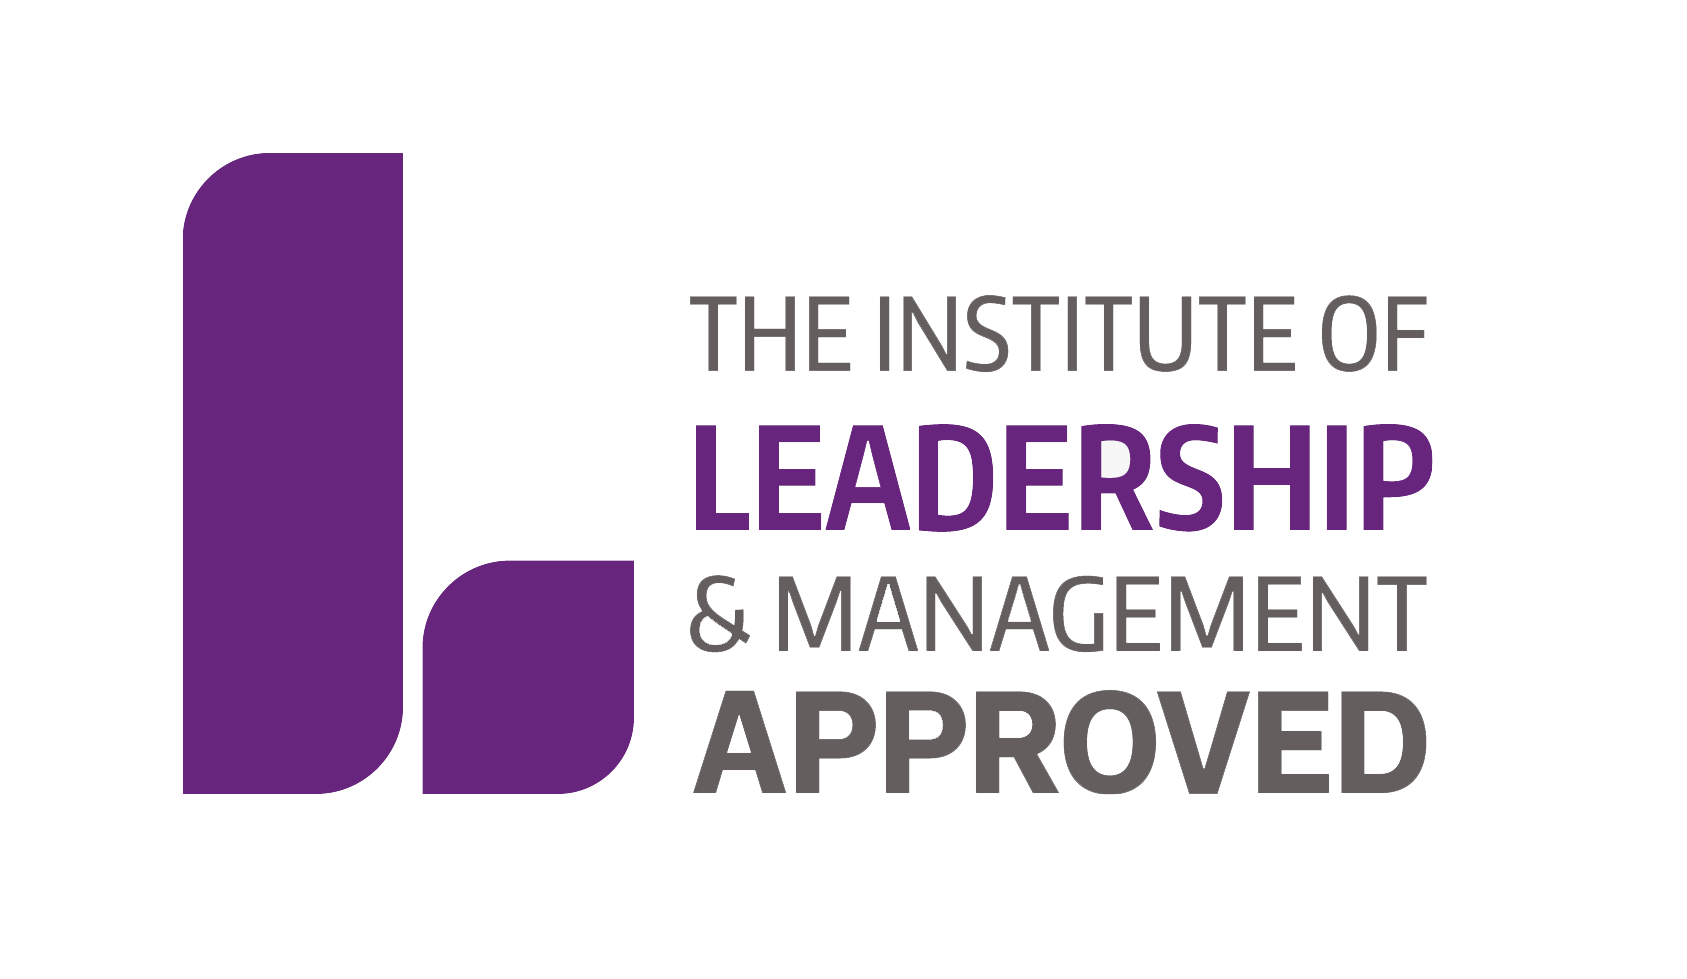 institute of leadership & management approved